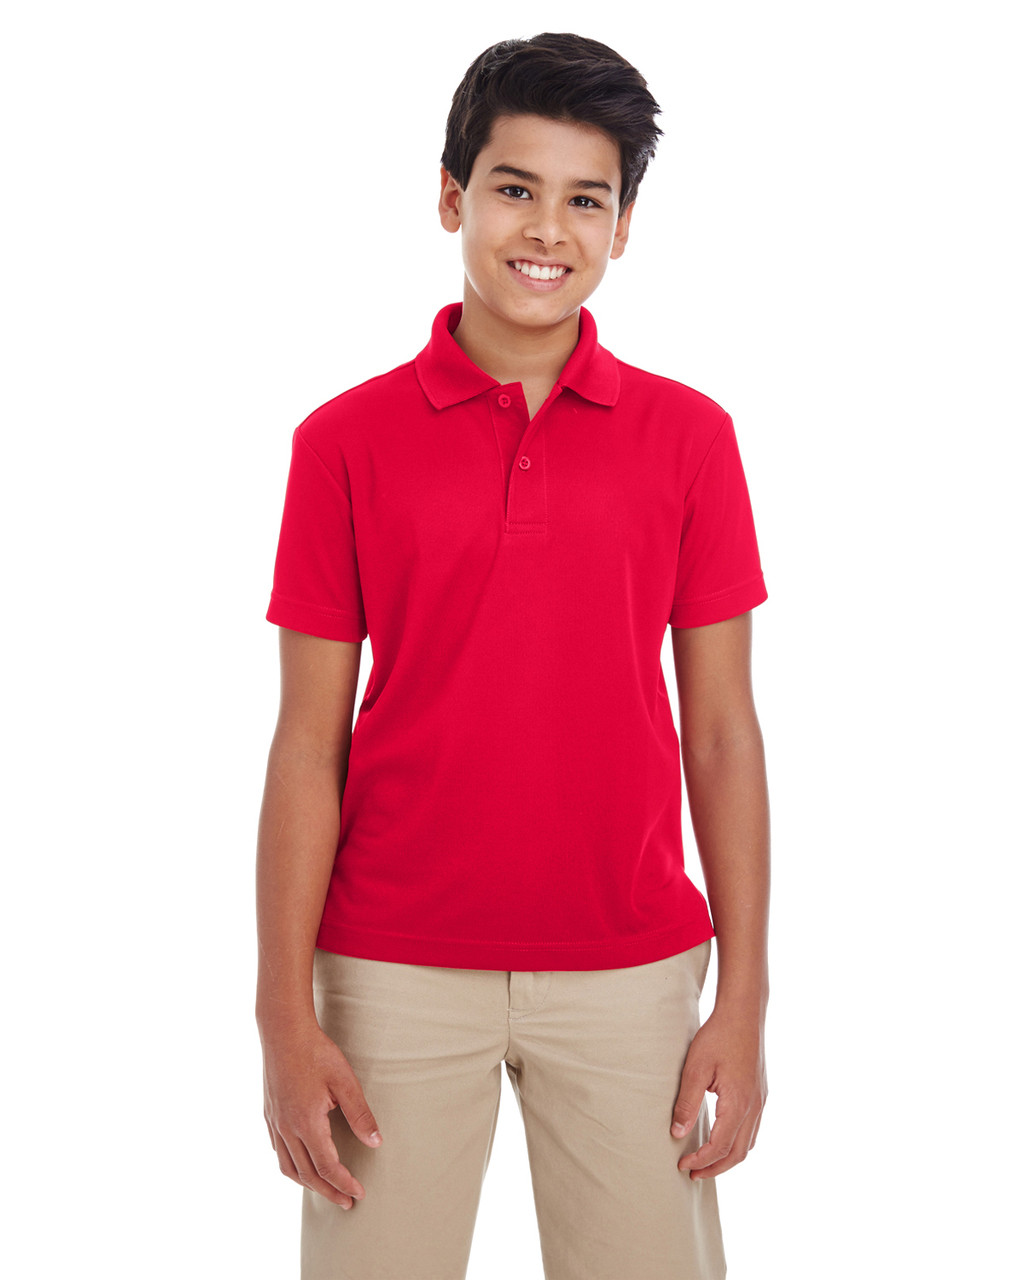 Classic Red - 88181Y Ash City - Core 365 Youth Origin Performance Pique Polo Shirt | Blankclothing.ca